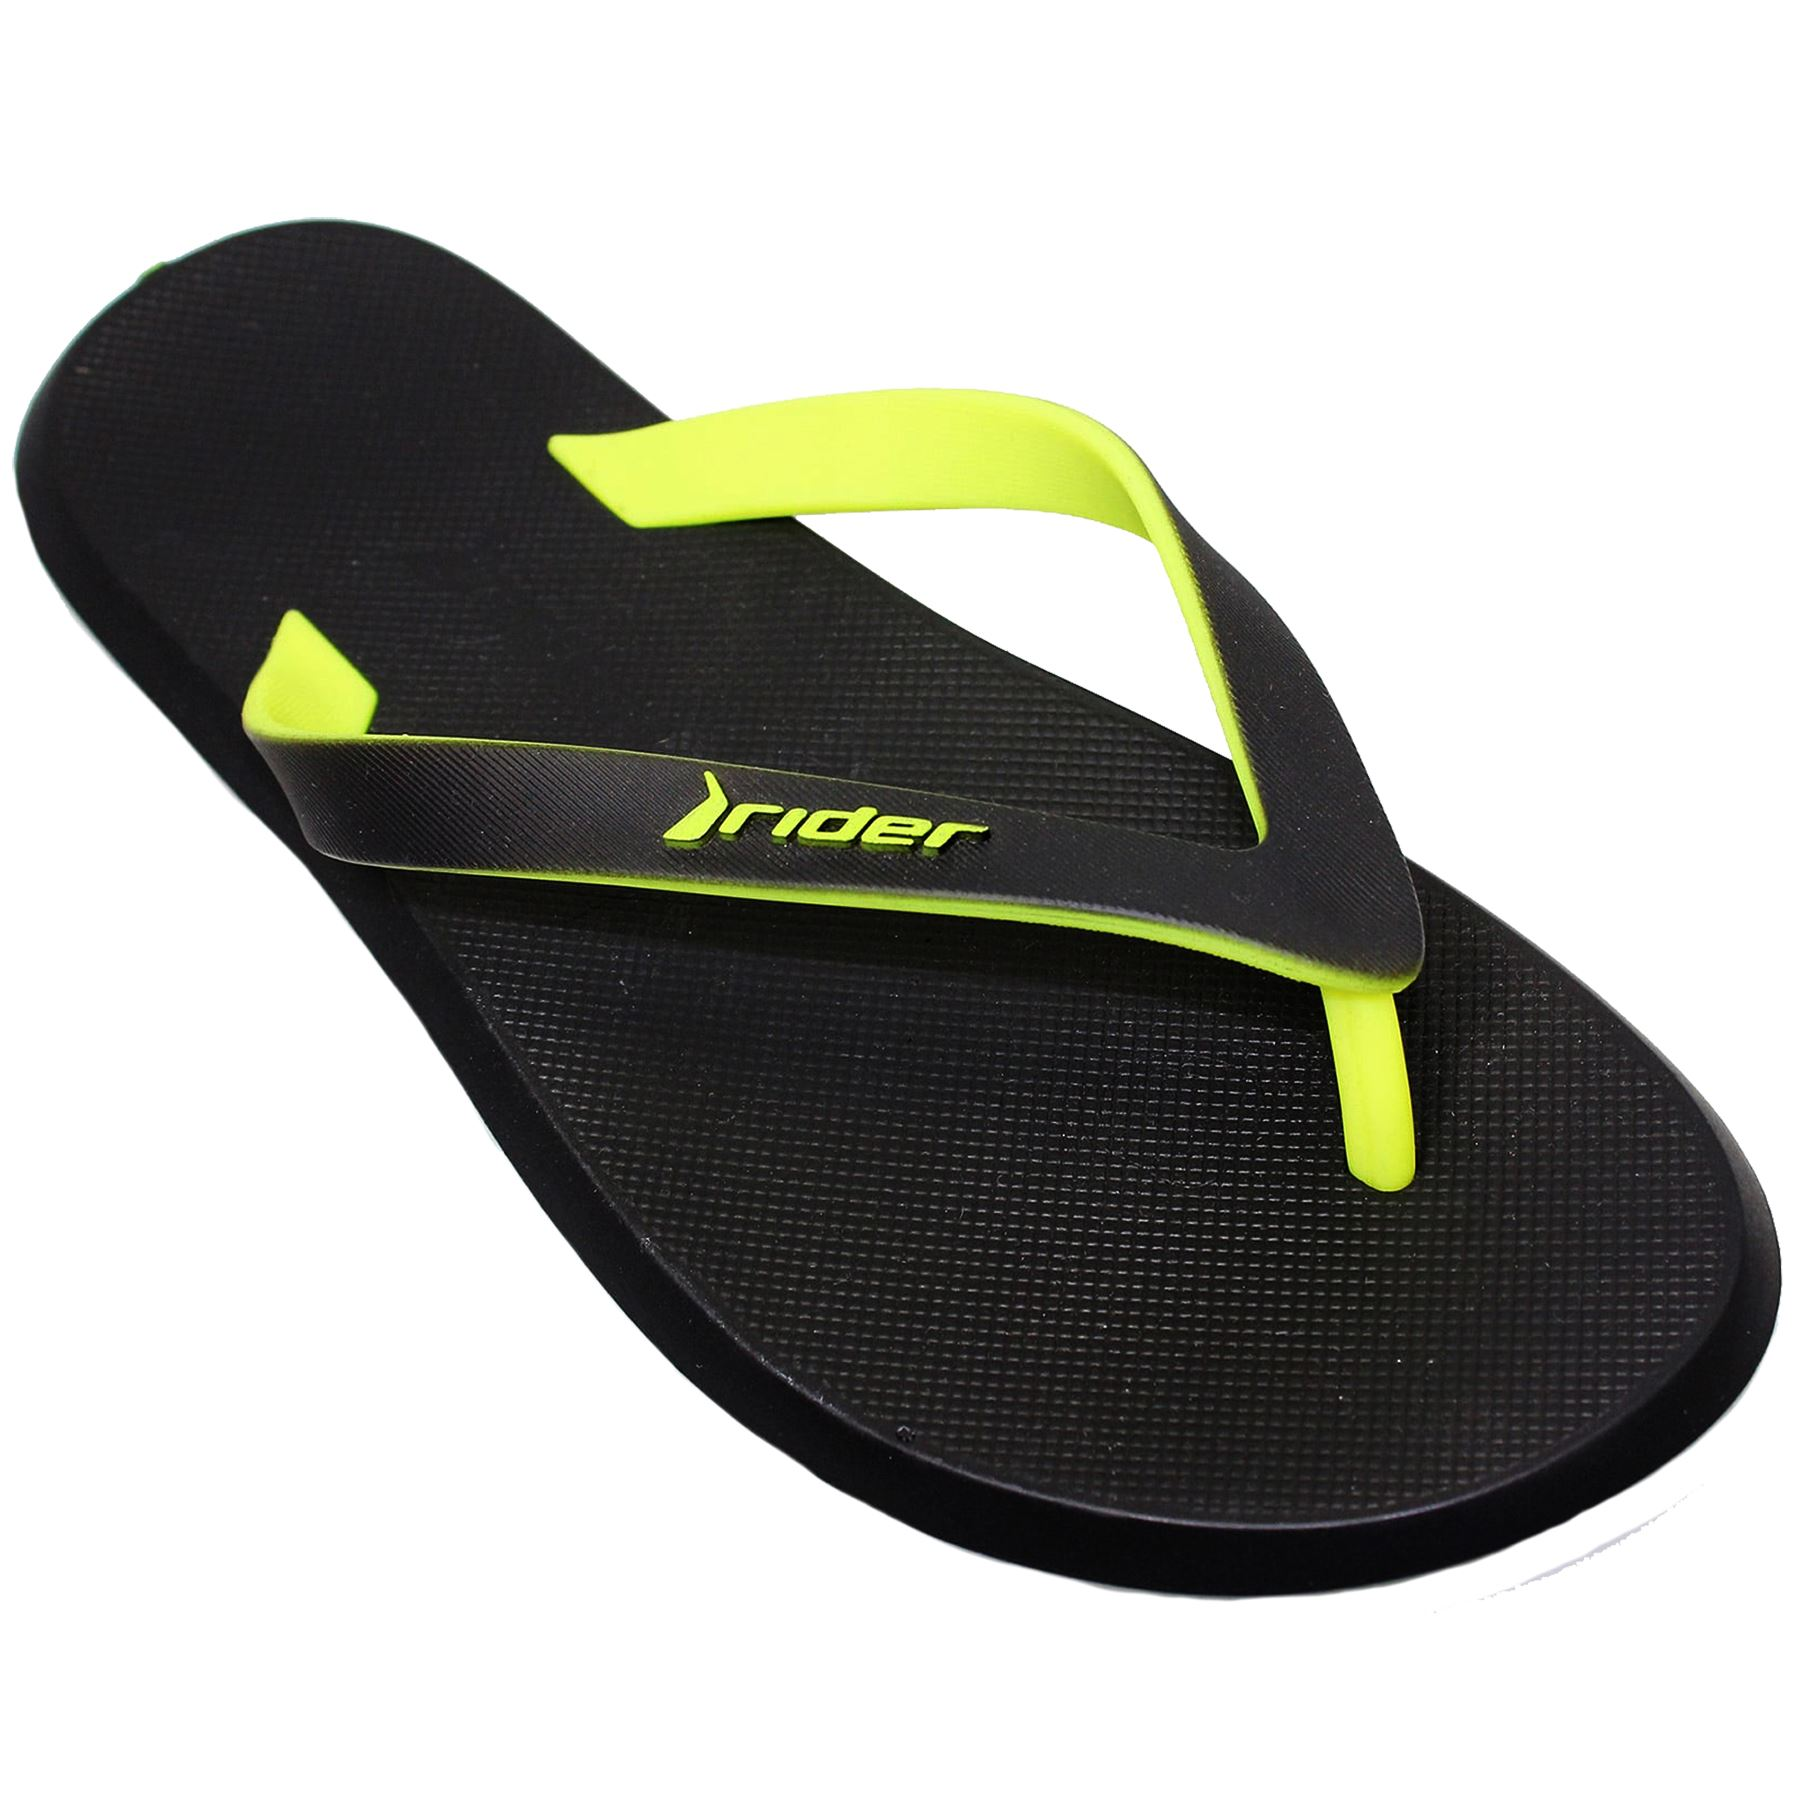 0123f046b97101 Mens Basic Dual Sized Comfortable Beach Shoes Thong Sandals Flip Flops  Black Aus 8. About this product. Picture 1 of 5  Picture 2 of 5 ...